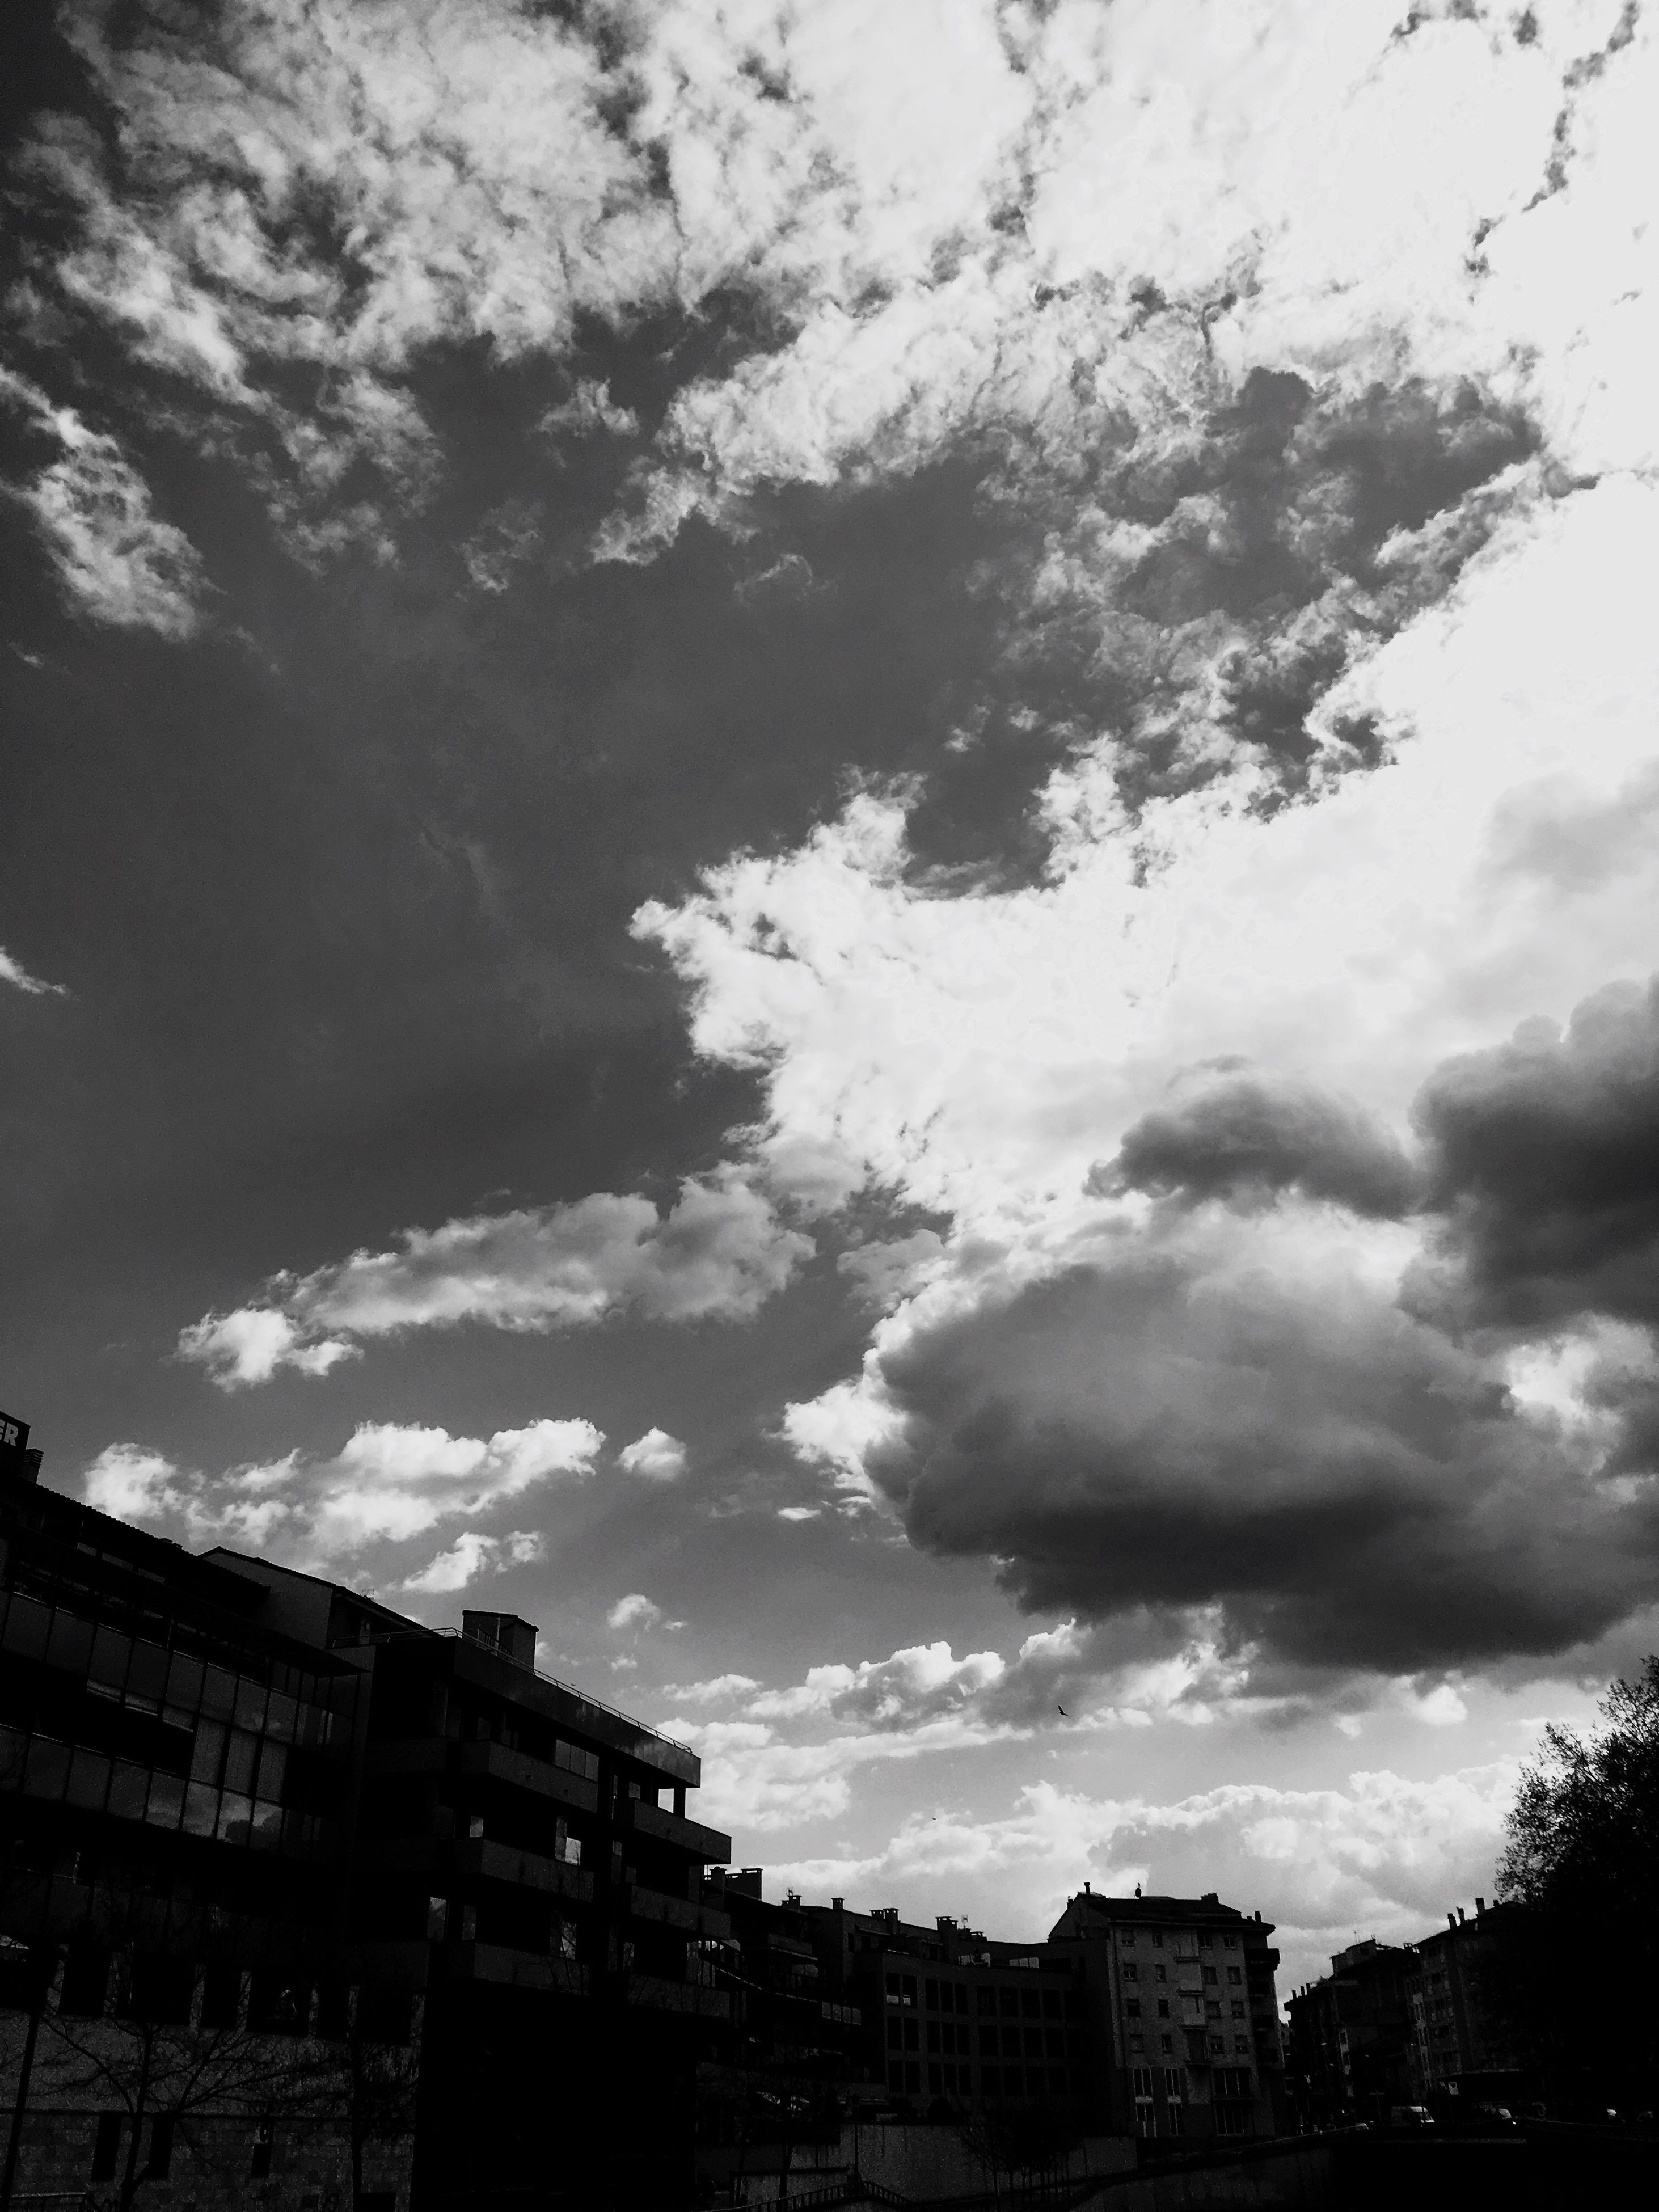 sky, built structure, architecture, cloud - sky, building exterior, low angle view, tree, no people, outdoors, nature, city, day